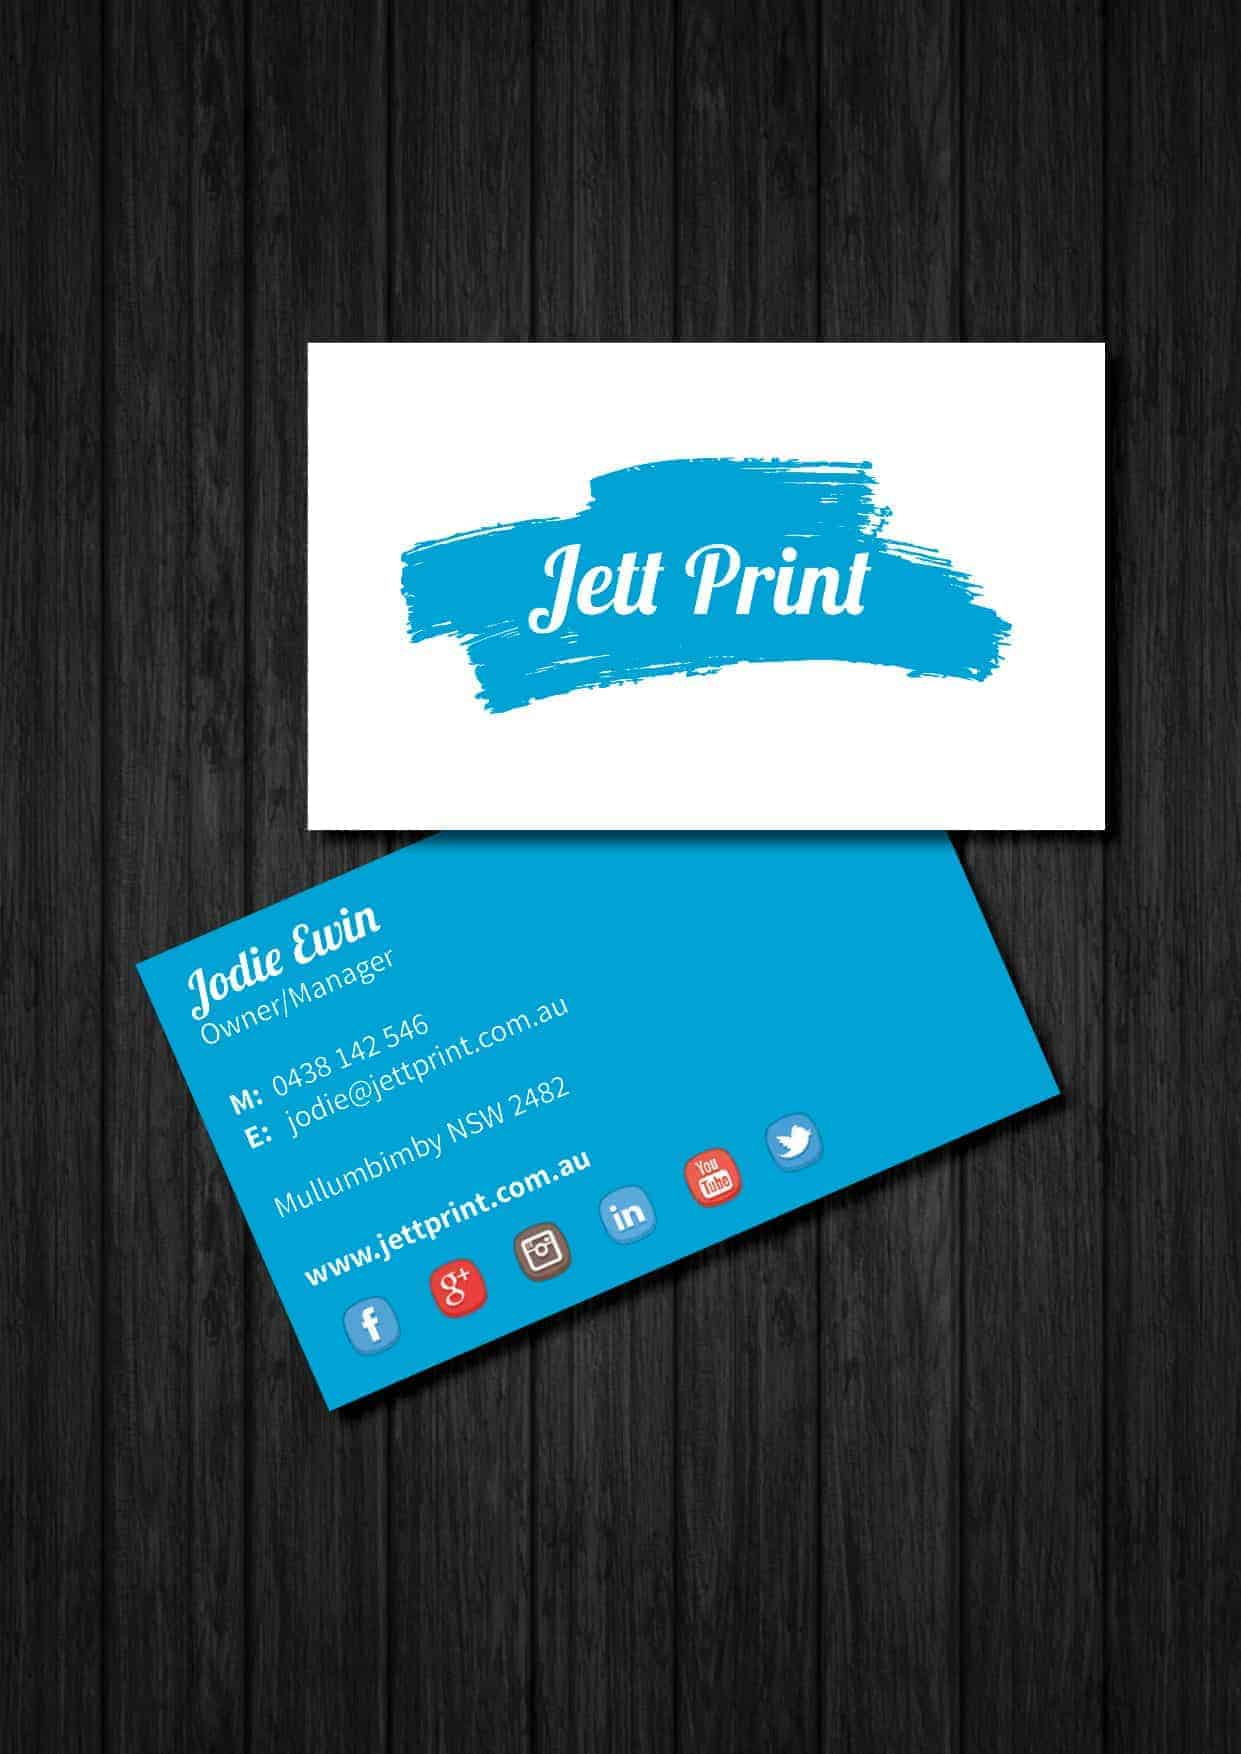 Spot uv business cards printing australia gold coast brisbane tweed online business card printing reheart